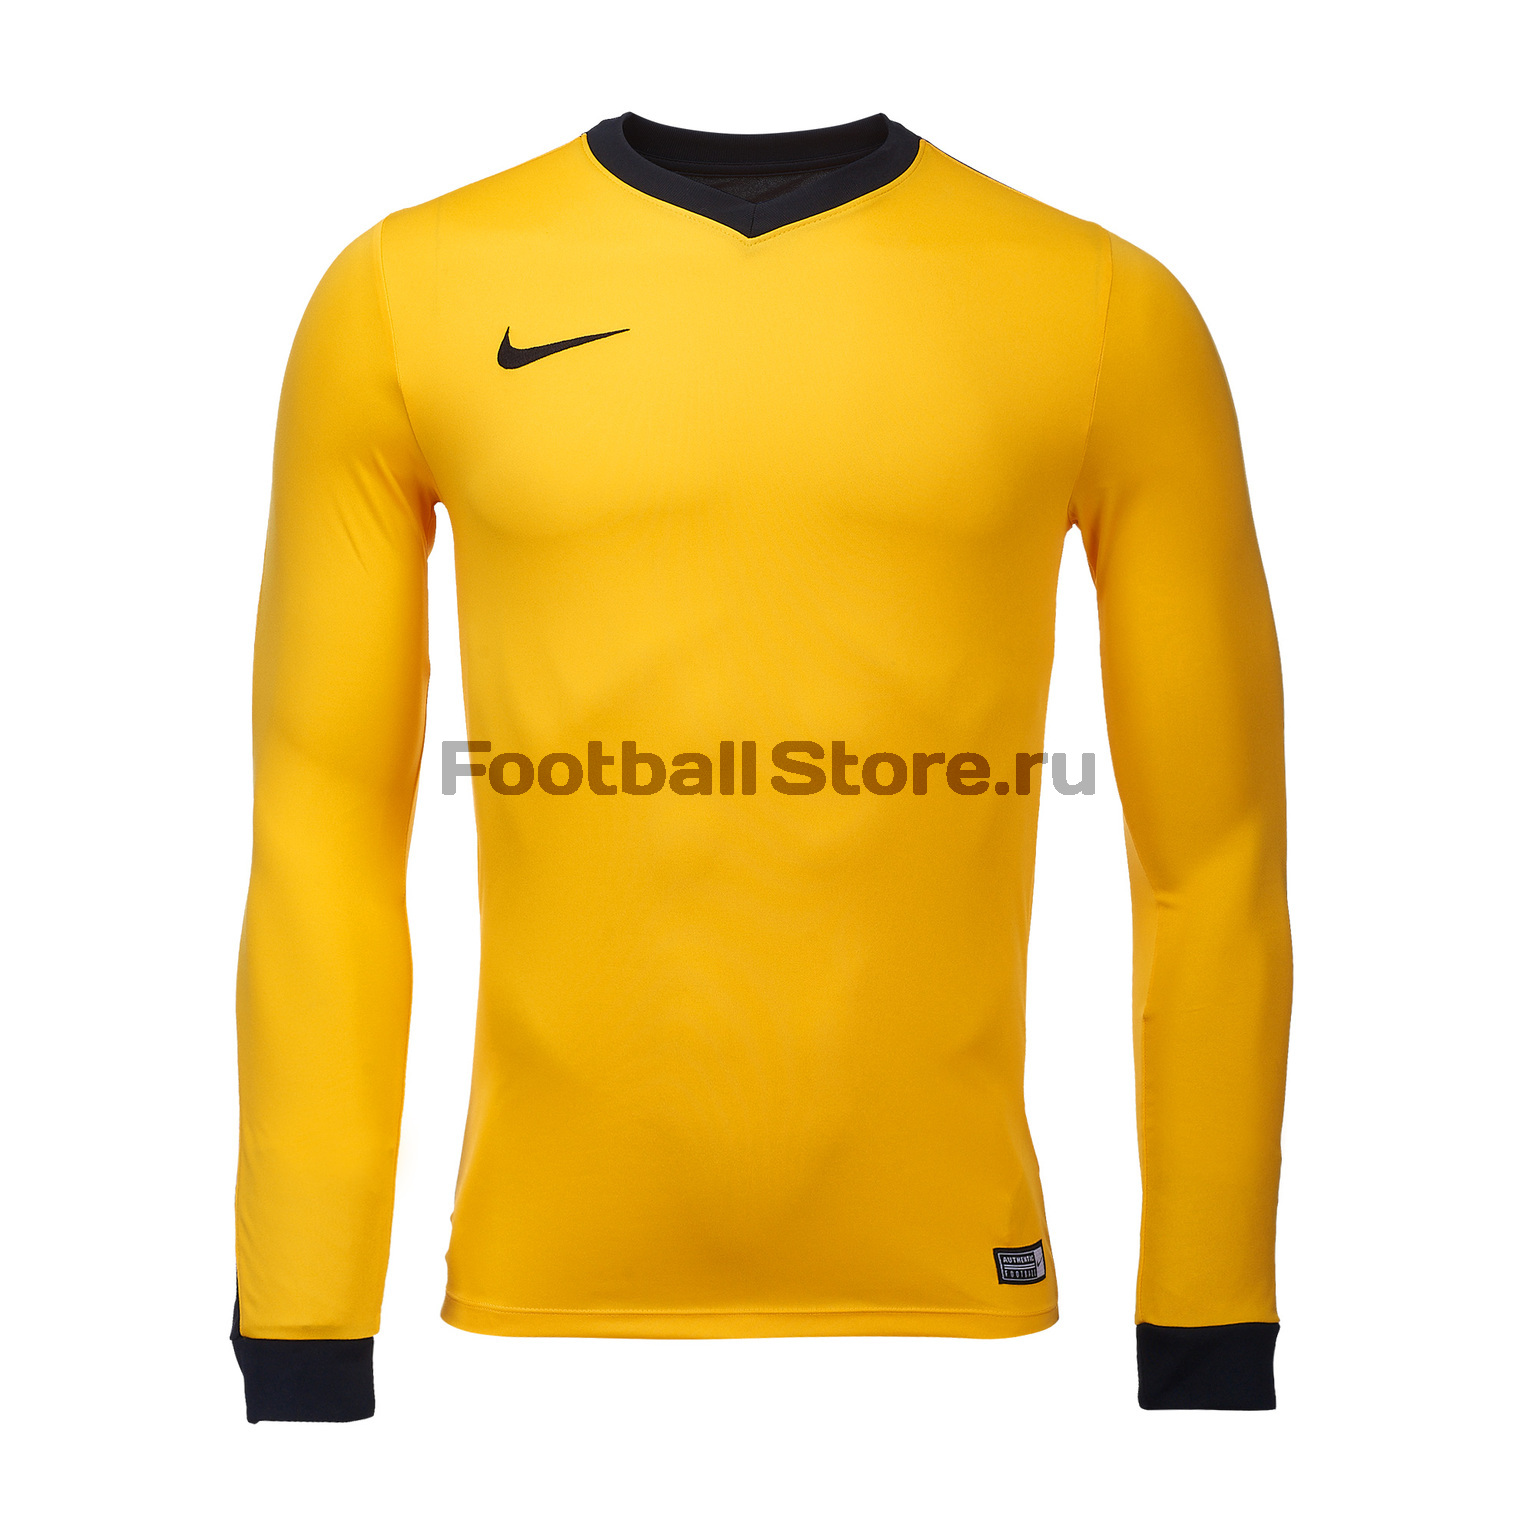 Футболки Nike Футболка игровая Nike LS Striker IV JSY 725885-739 hatsan striker alpha